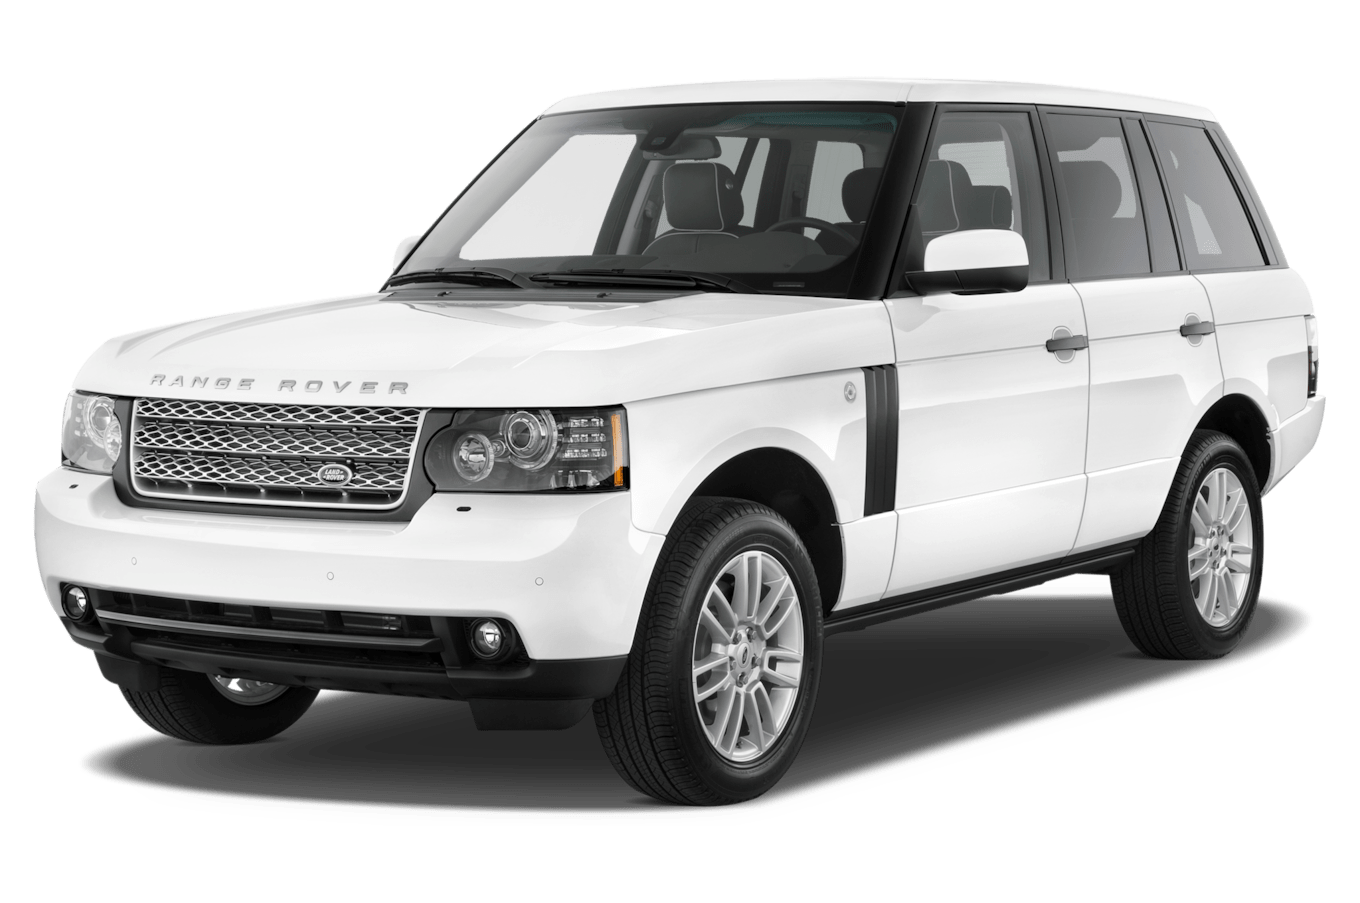 Landrover Range 2011 Land Rover Range Rover Reviews And Rating Motortrend